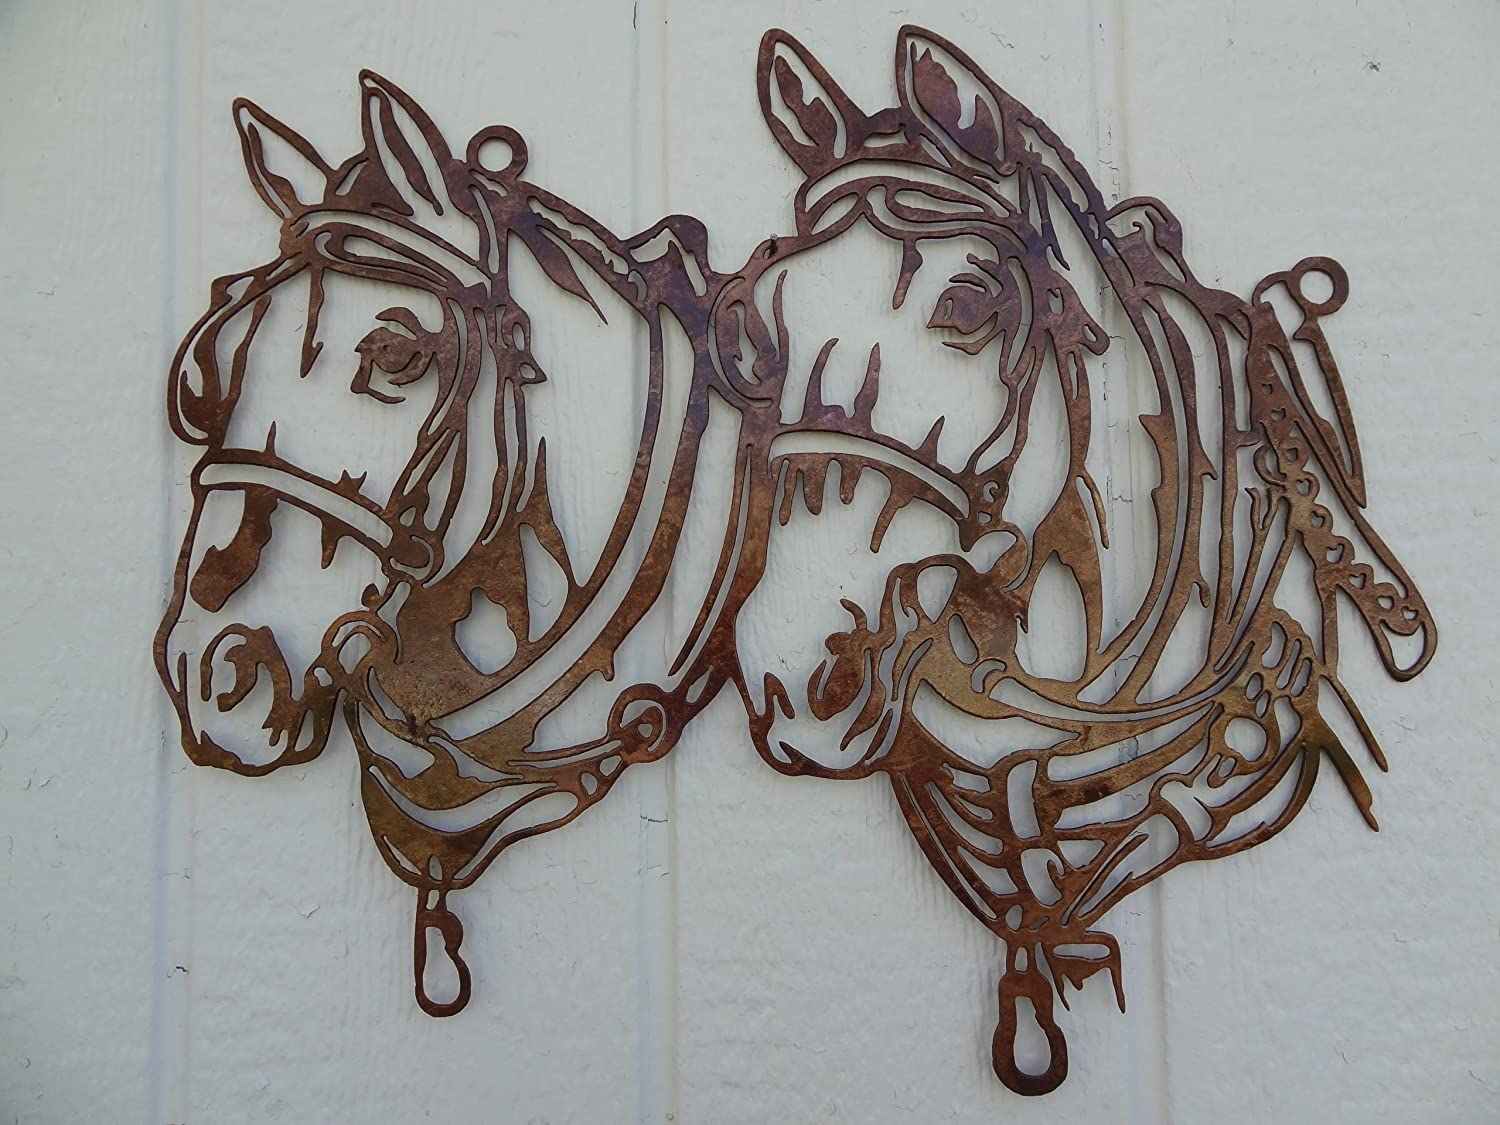 Exceptional Amazon.com: Draft Horse Head Metal Wall Art Country Rustic Home Decor: Home  U0026 Kitchen